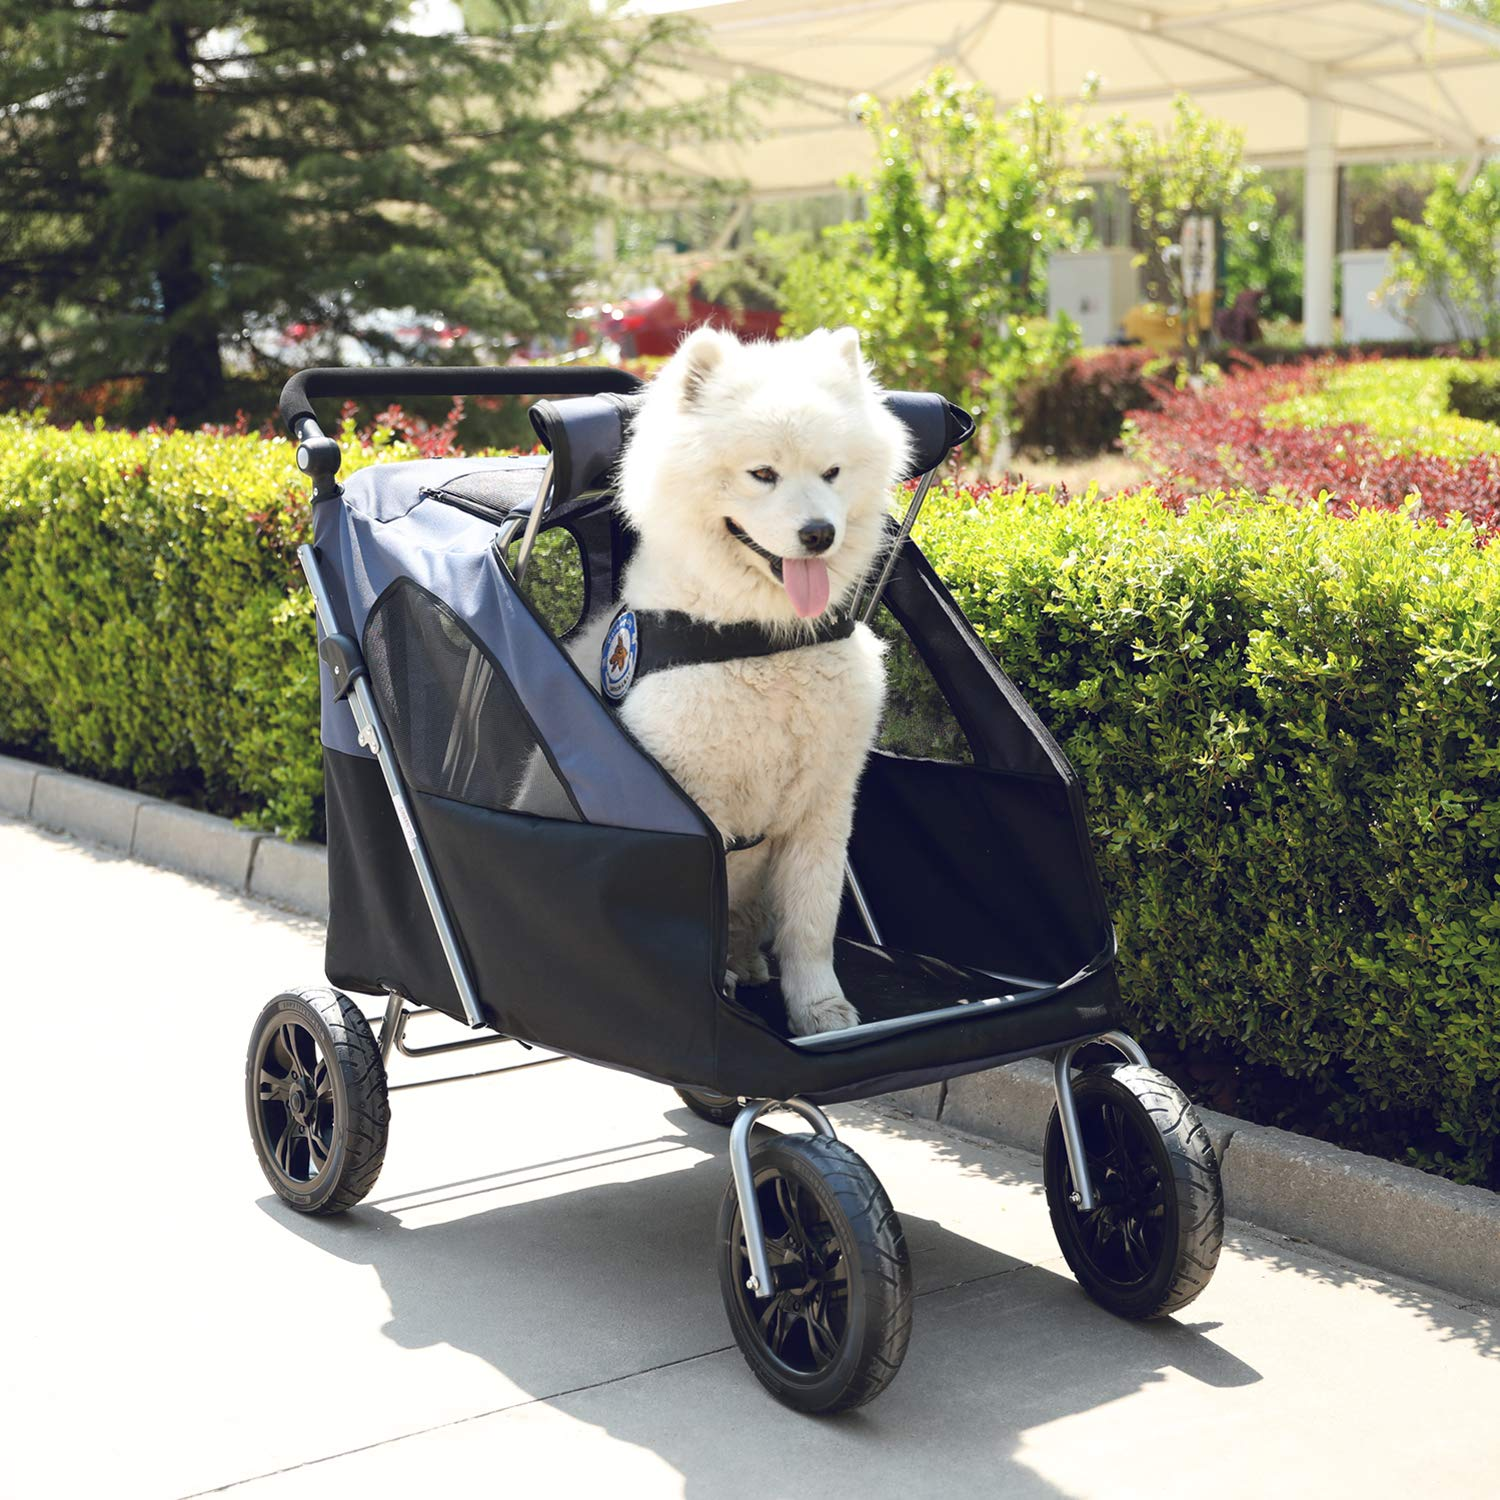 LAZY BUDDY Dog Stroller with 4 Rubber Wheels, Spacious Stroller for Big/Medium/Small Dogs, Foldable Traveling Carrier with Adjustable Handle for Dogs, Cats and Other Pets by LAZY BUDDY